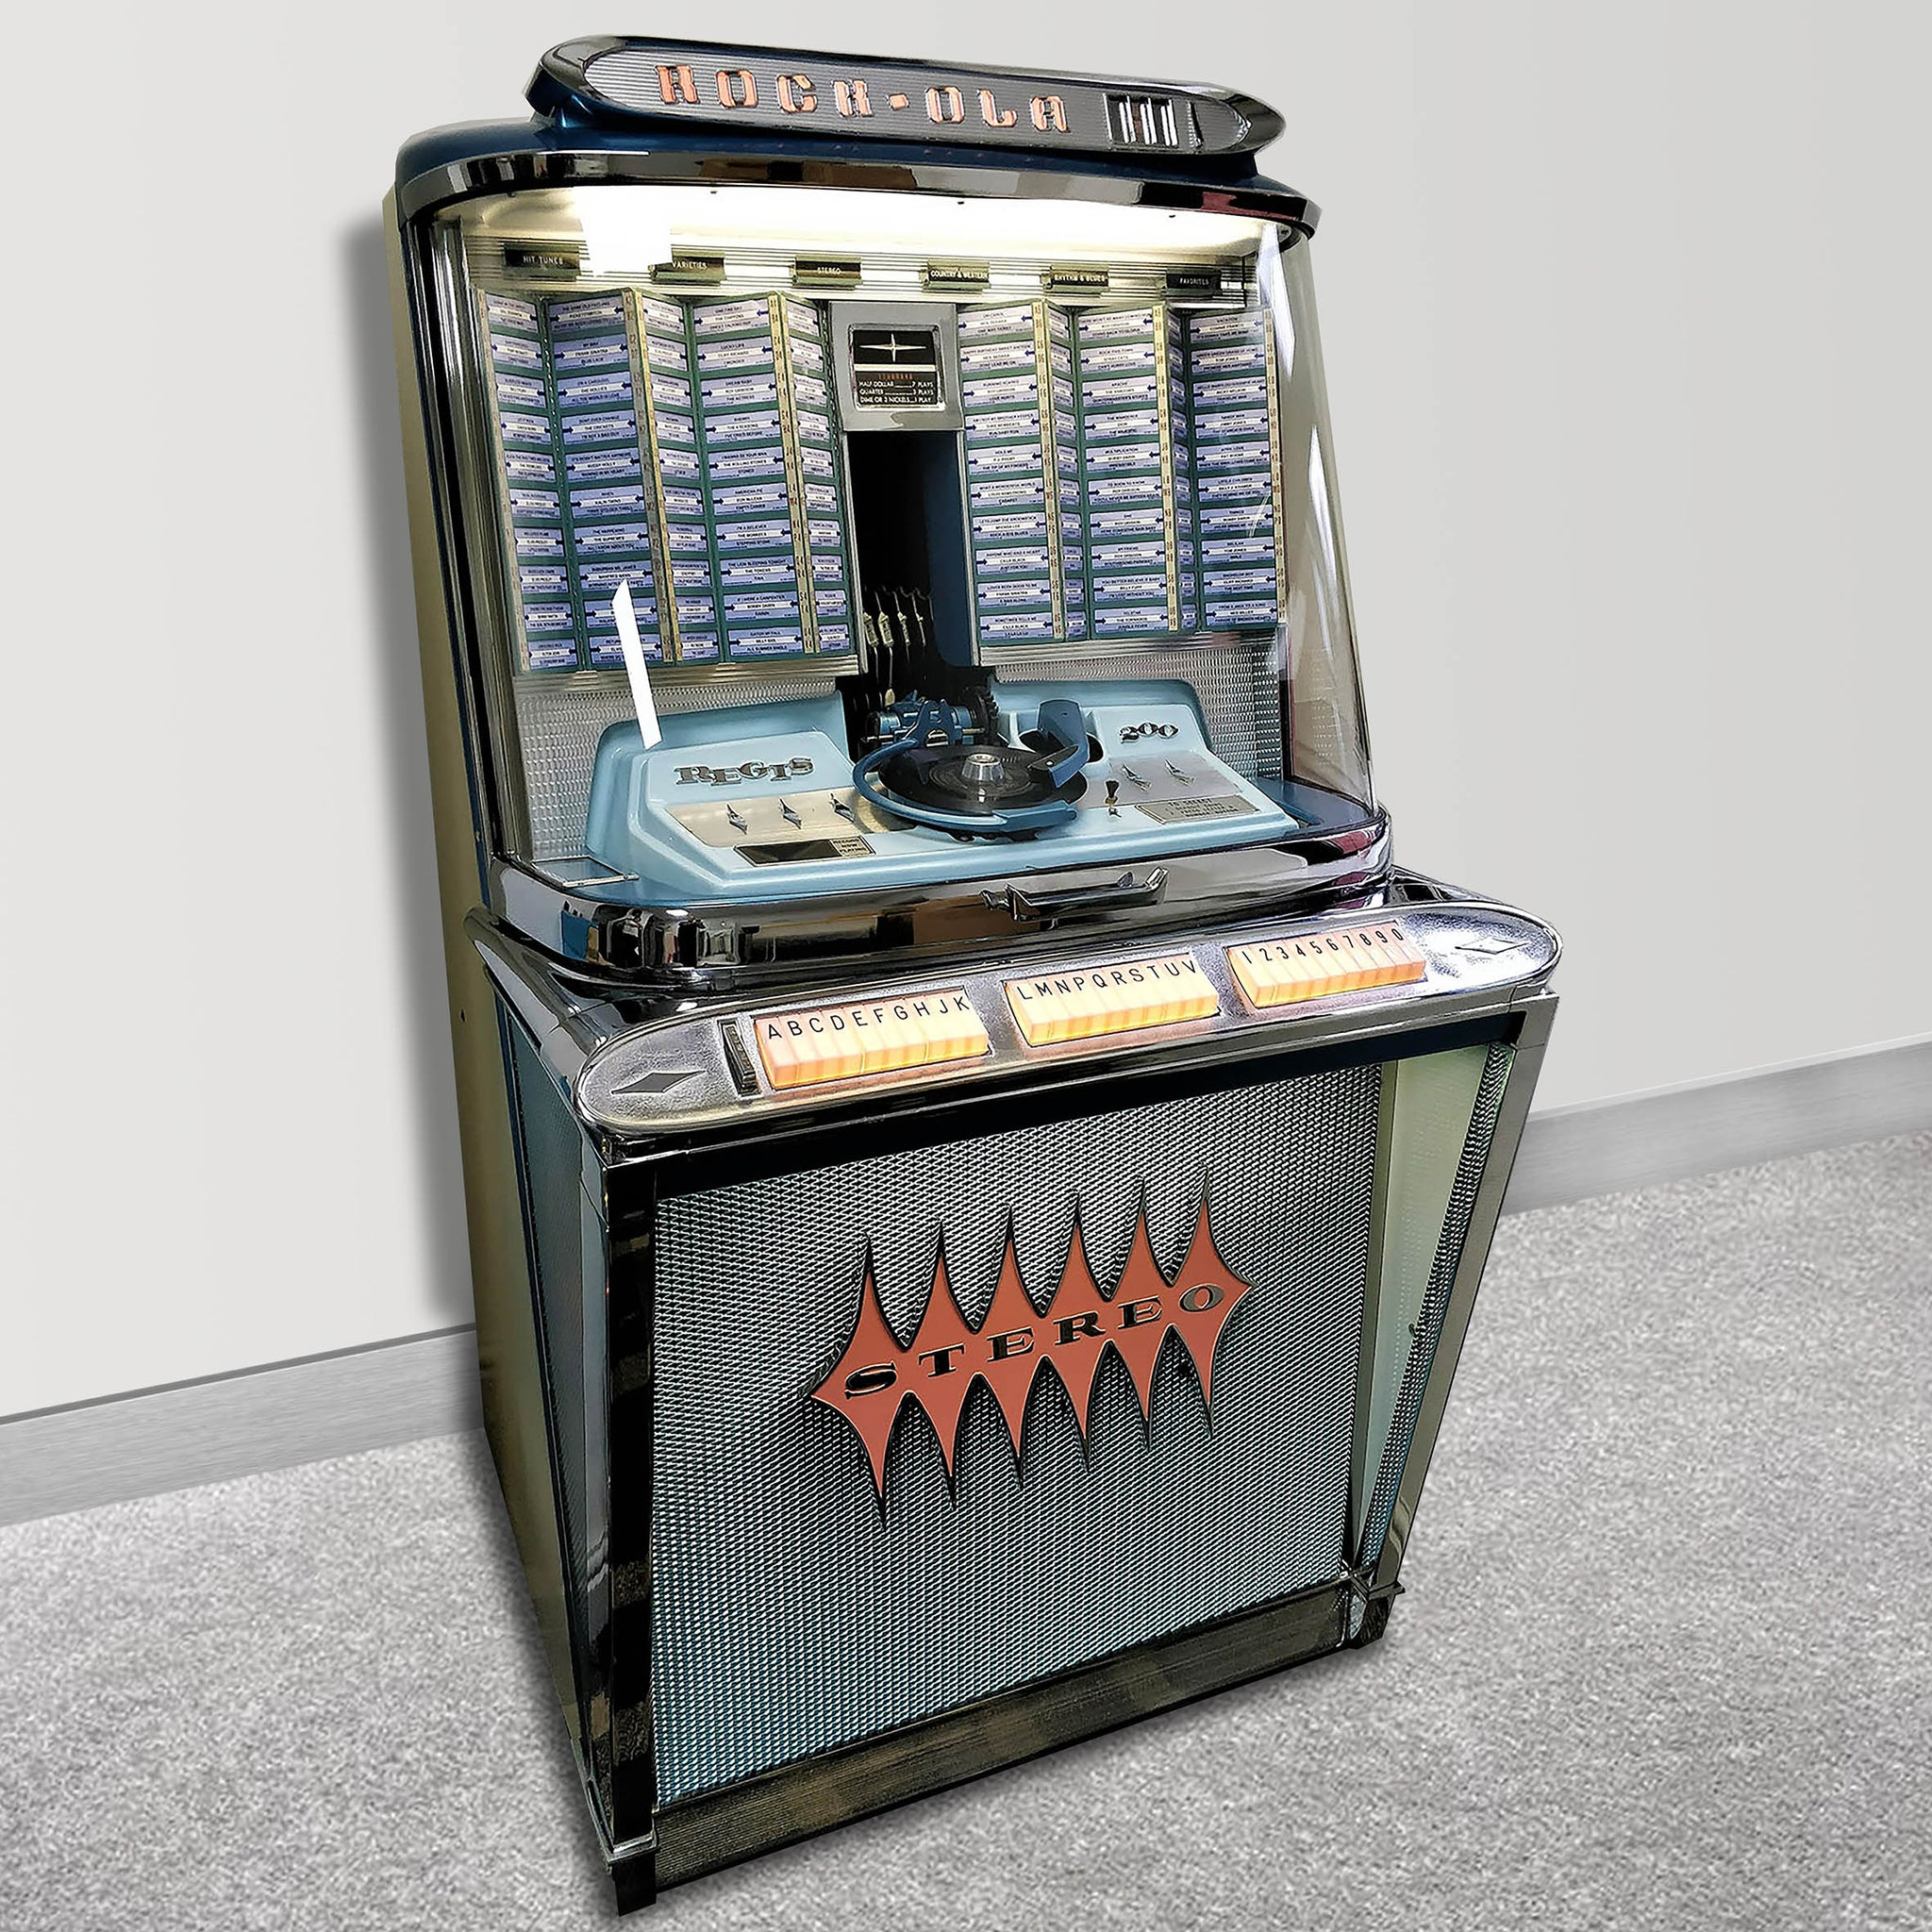 The 1961 Rock Ola Regis 200 selection Jukebox